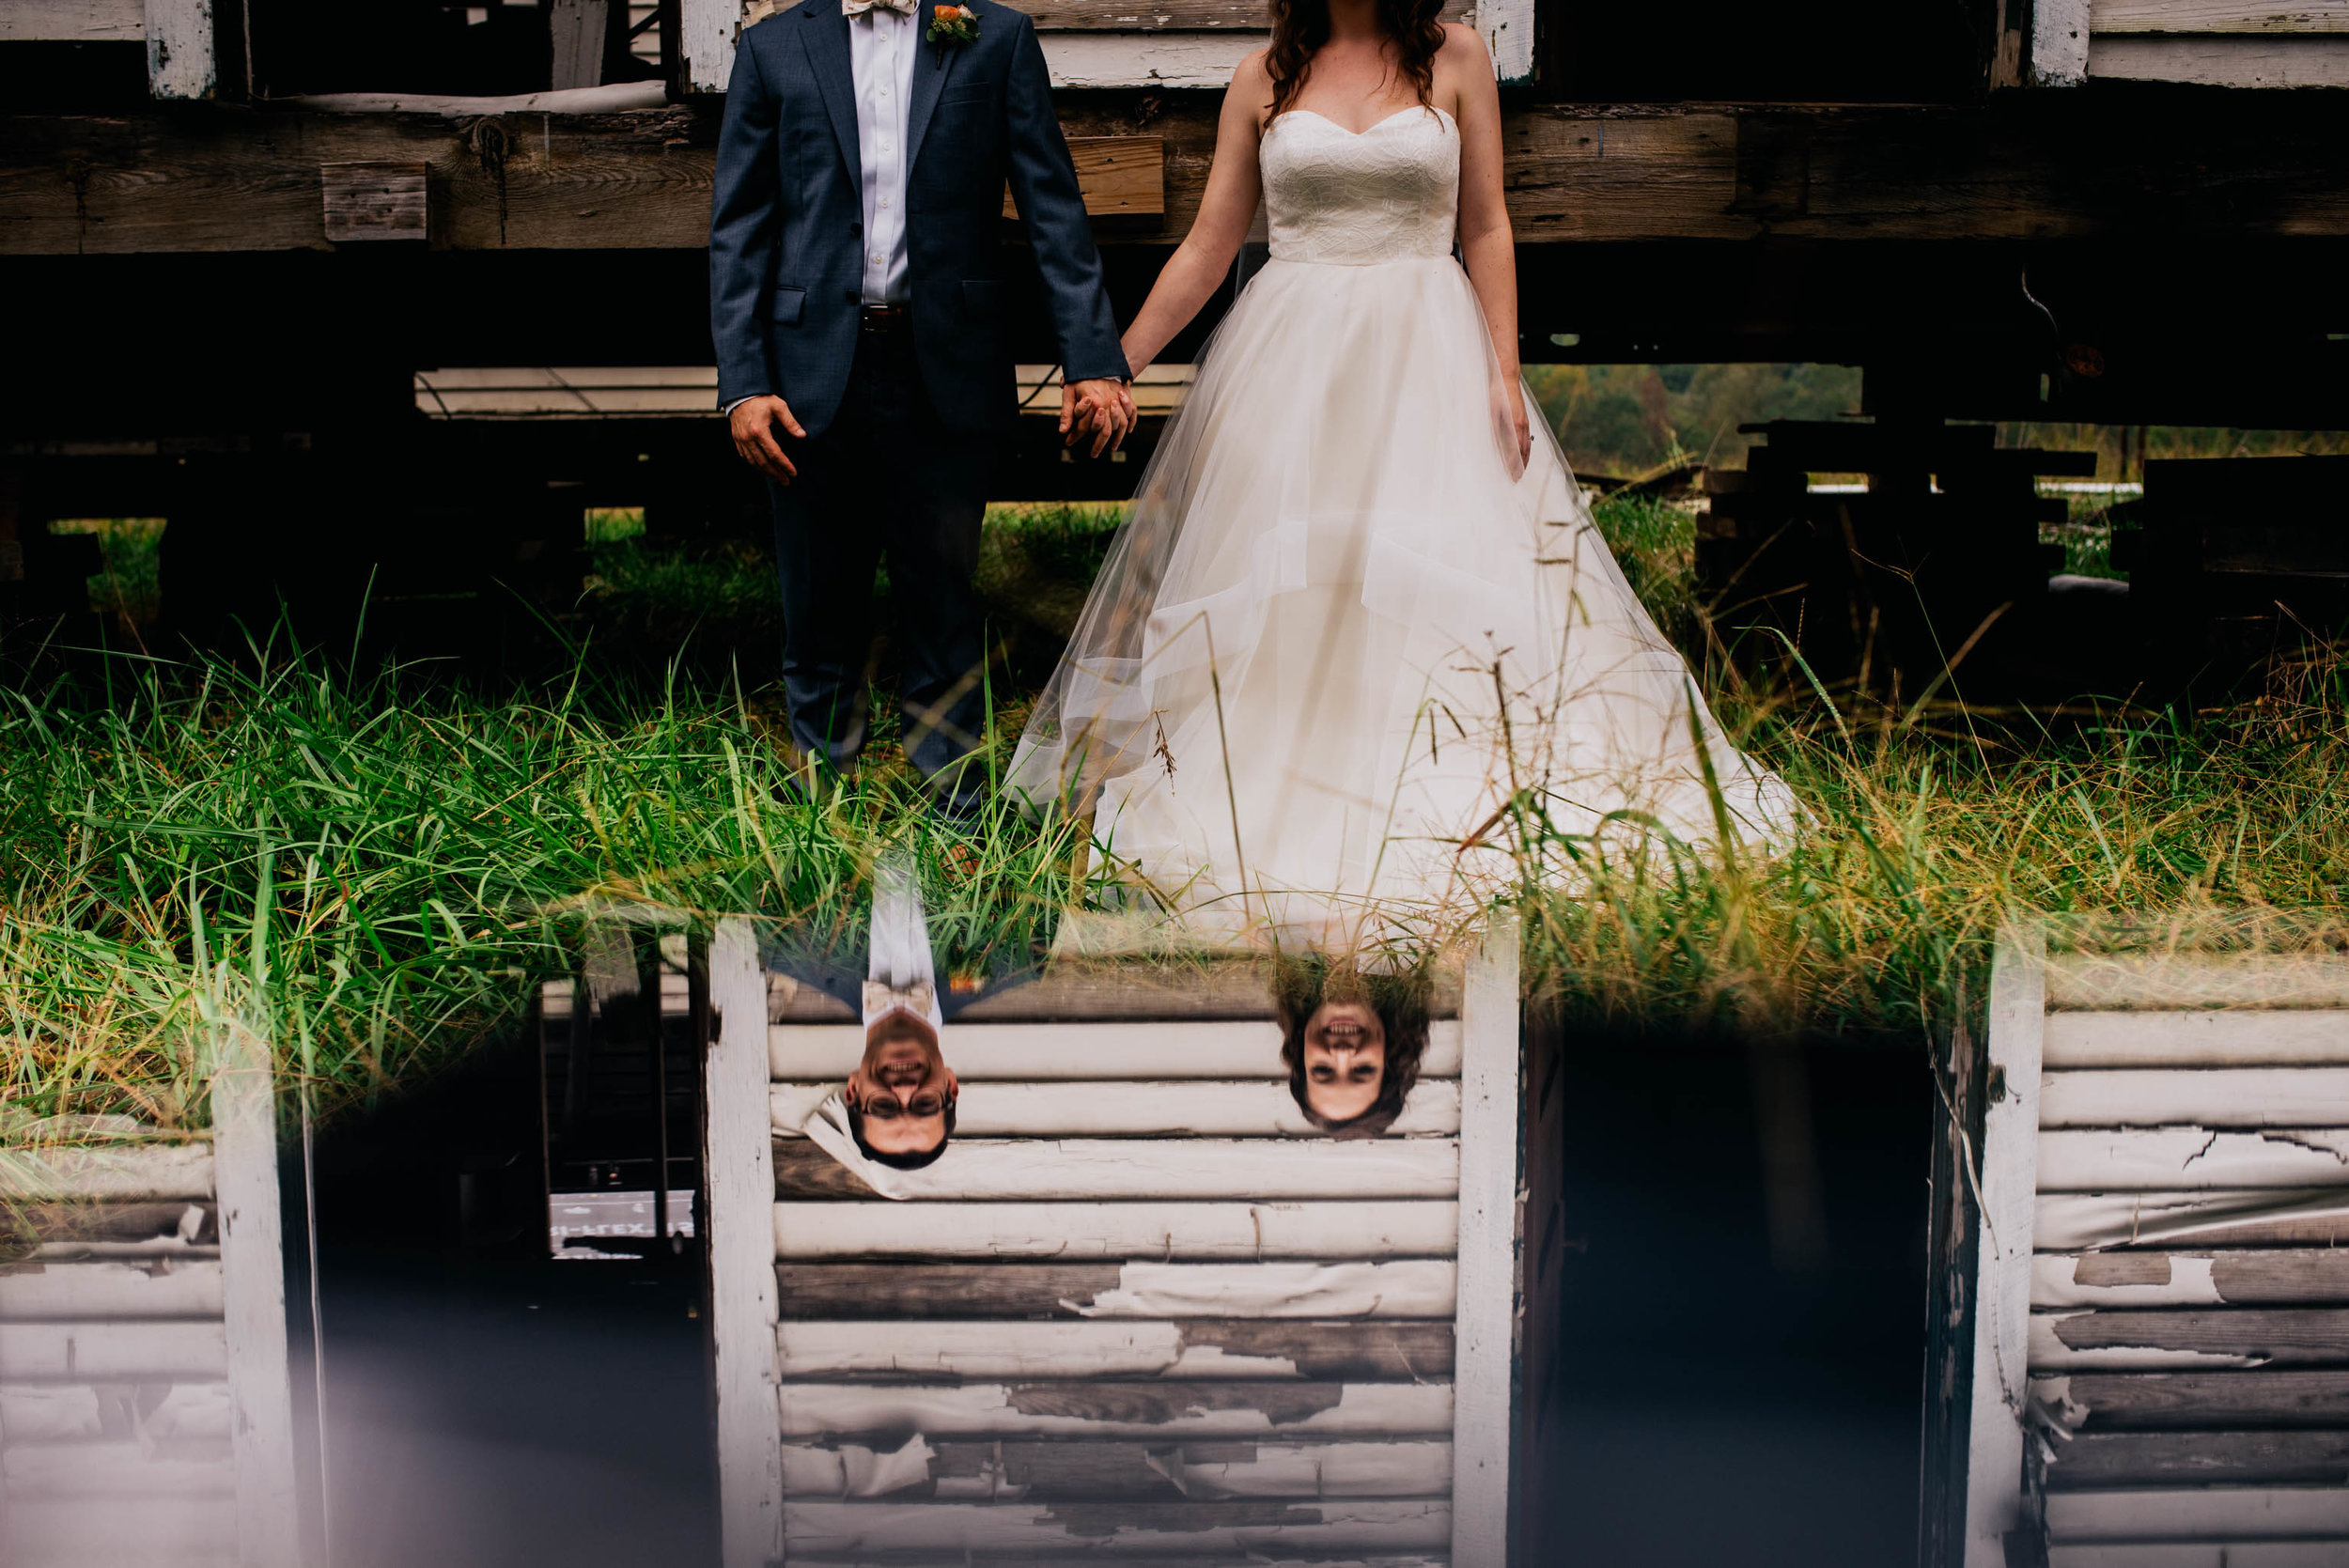 bride and groom as seen through a reflection on a piece of glass